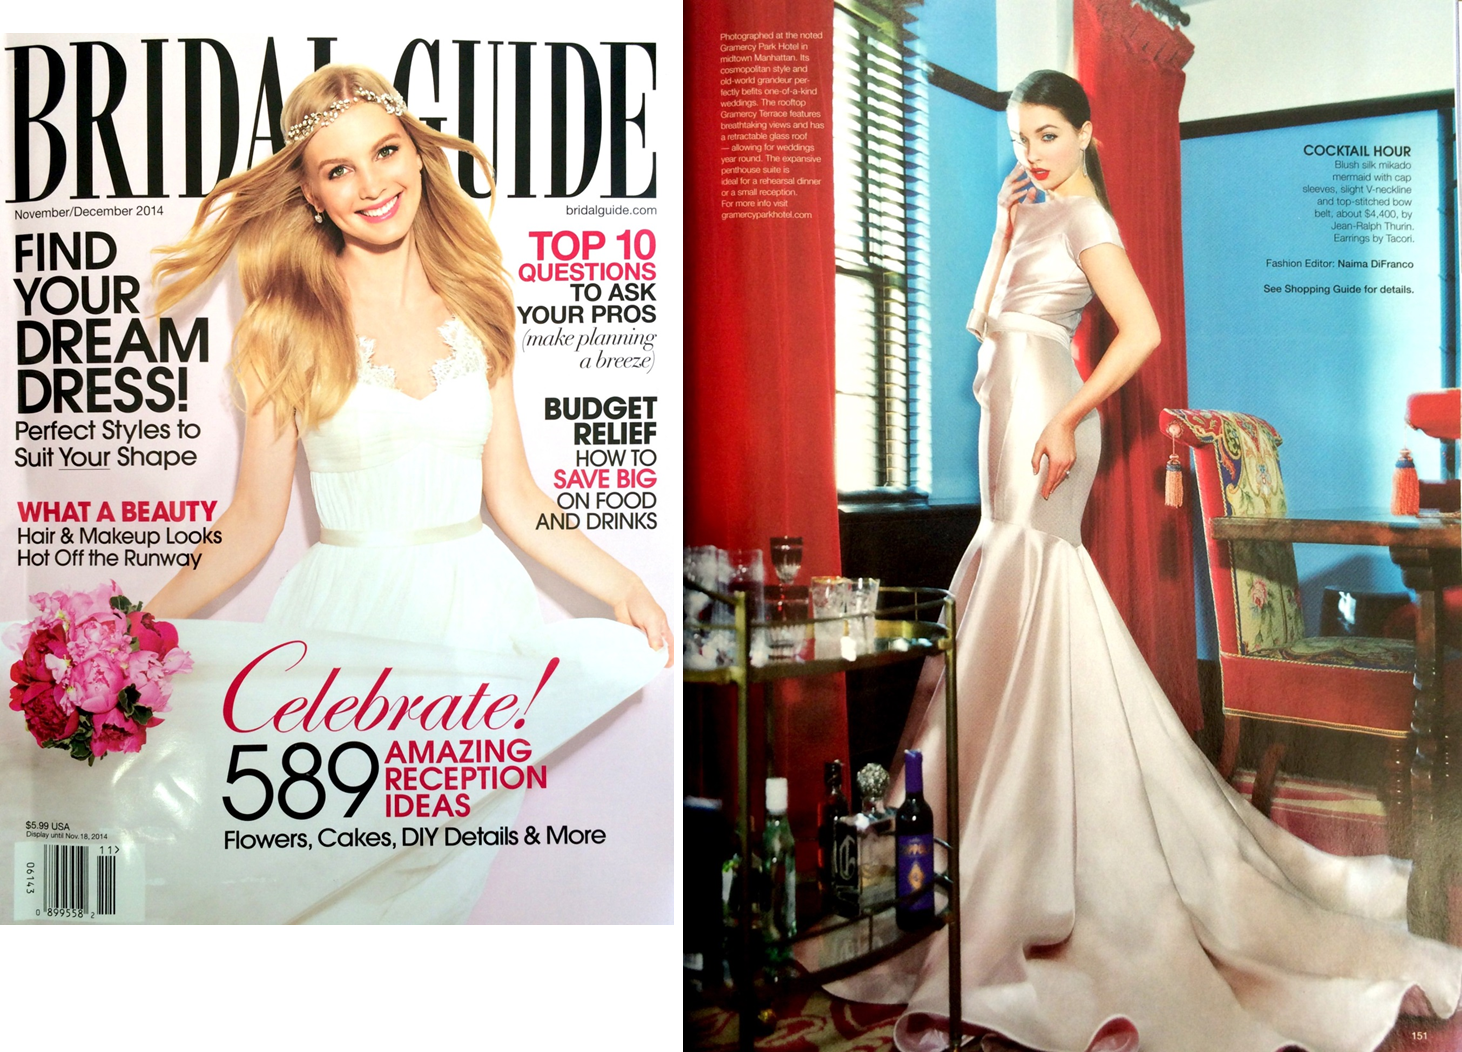 Bridal Guide Magazine.png